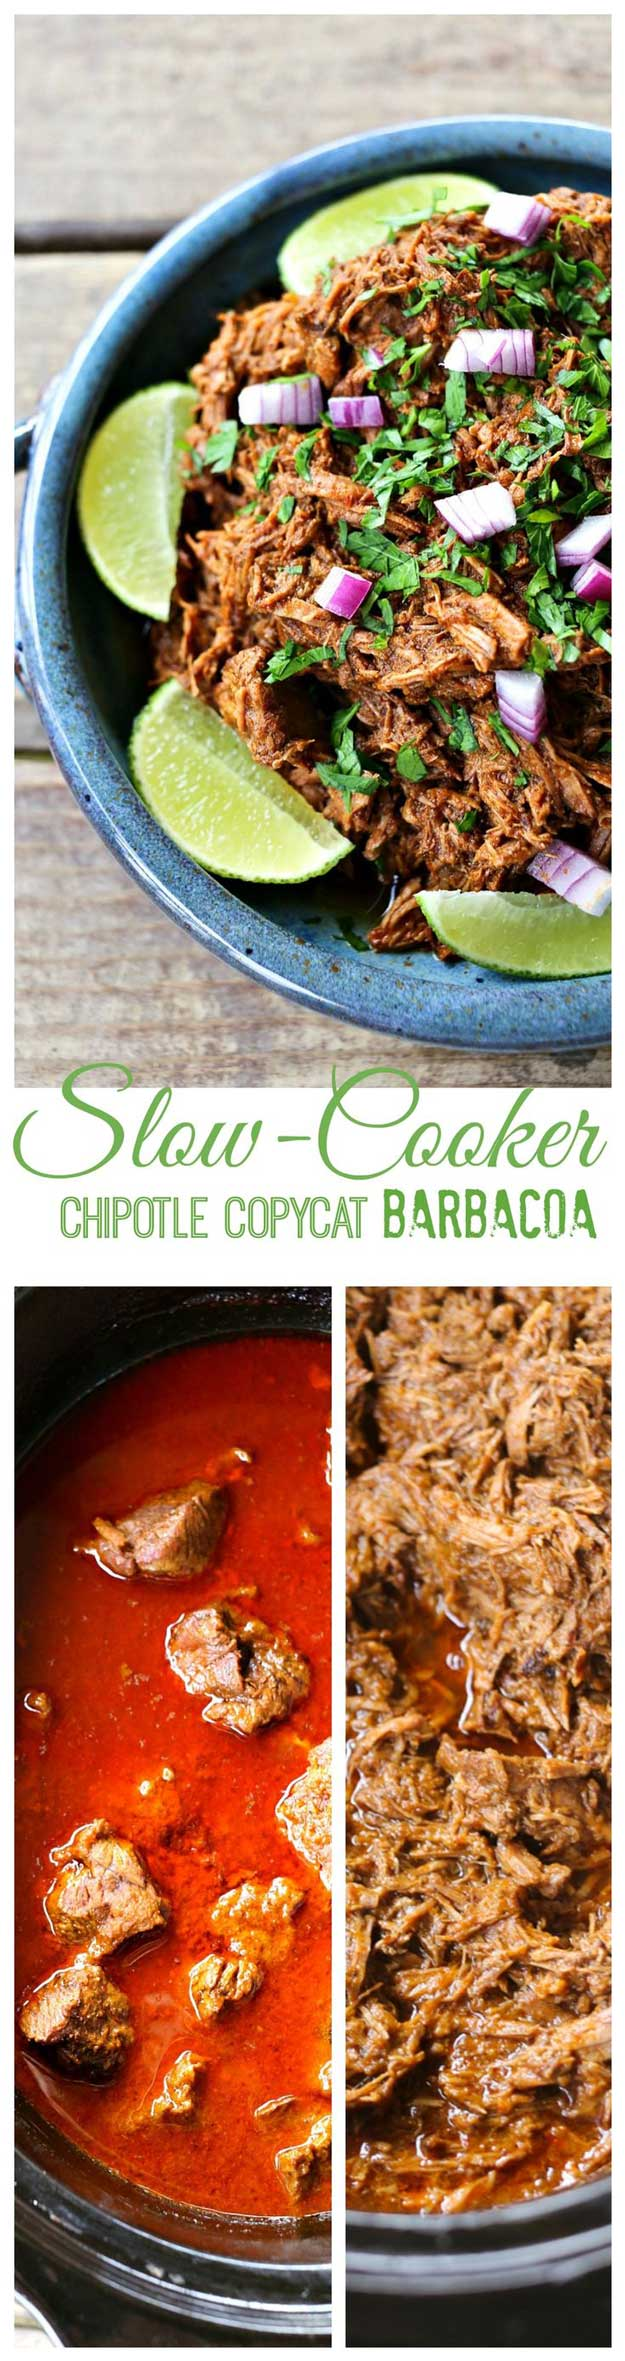 Chipotle Barbacoa Recipe